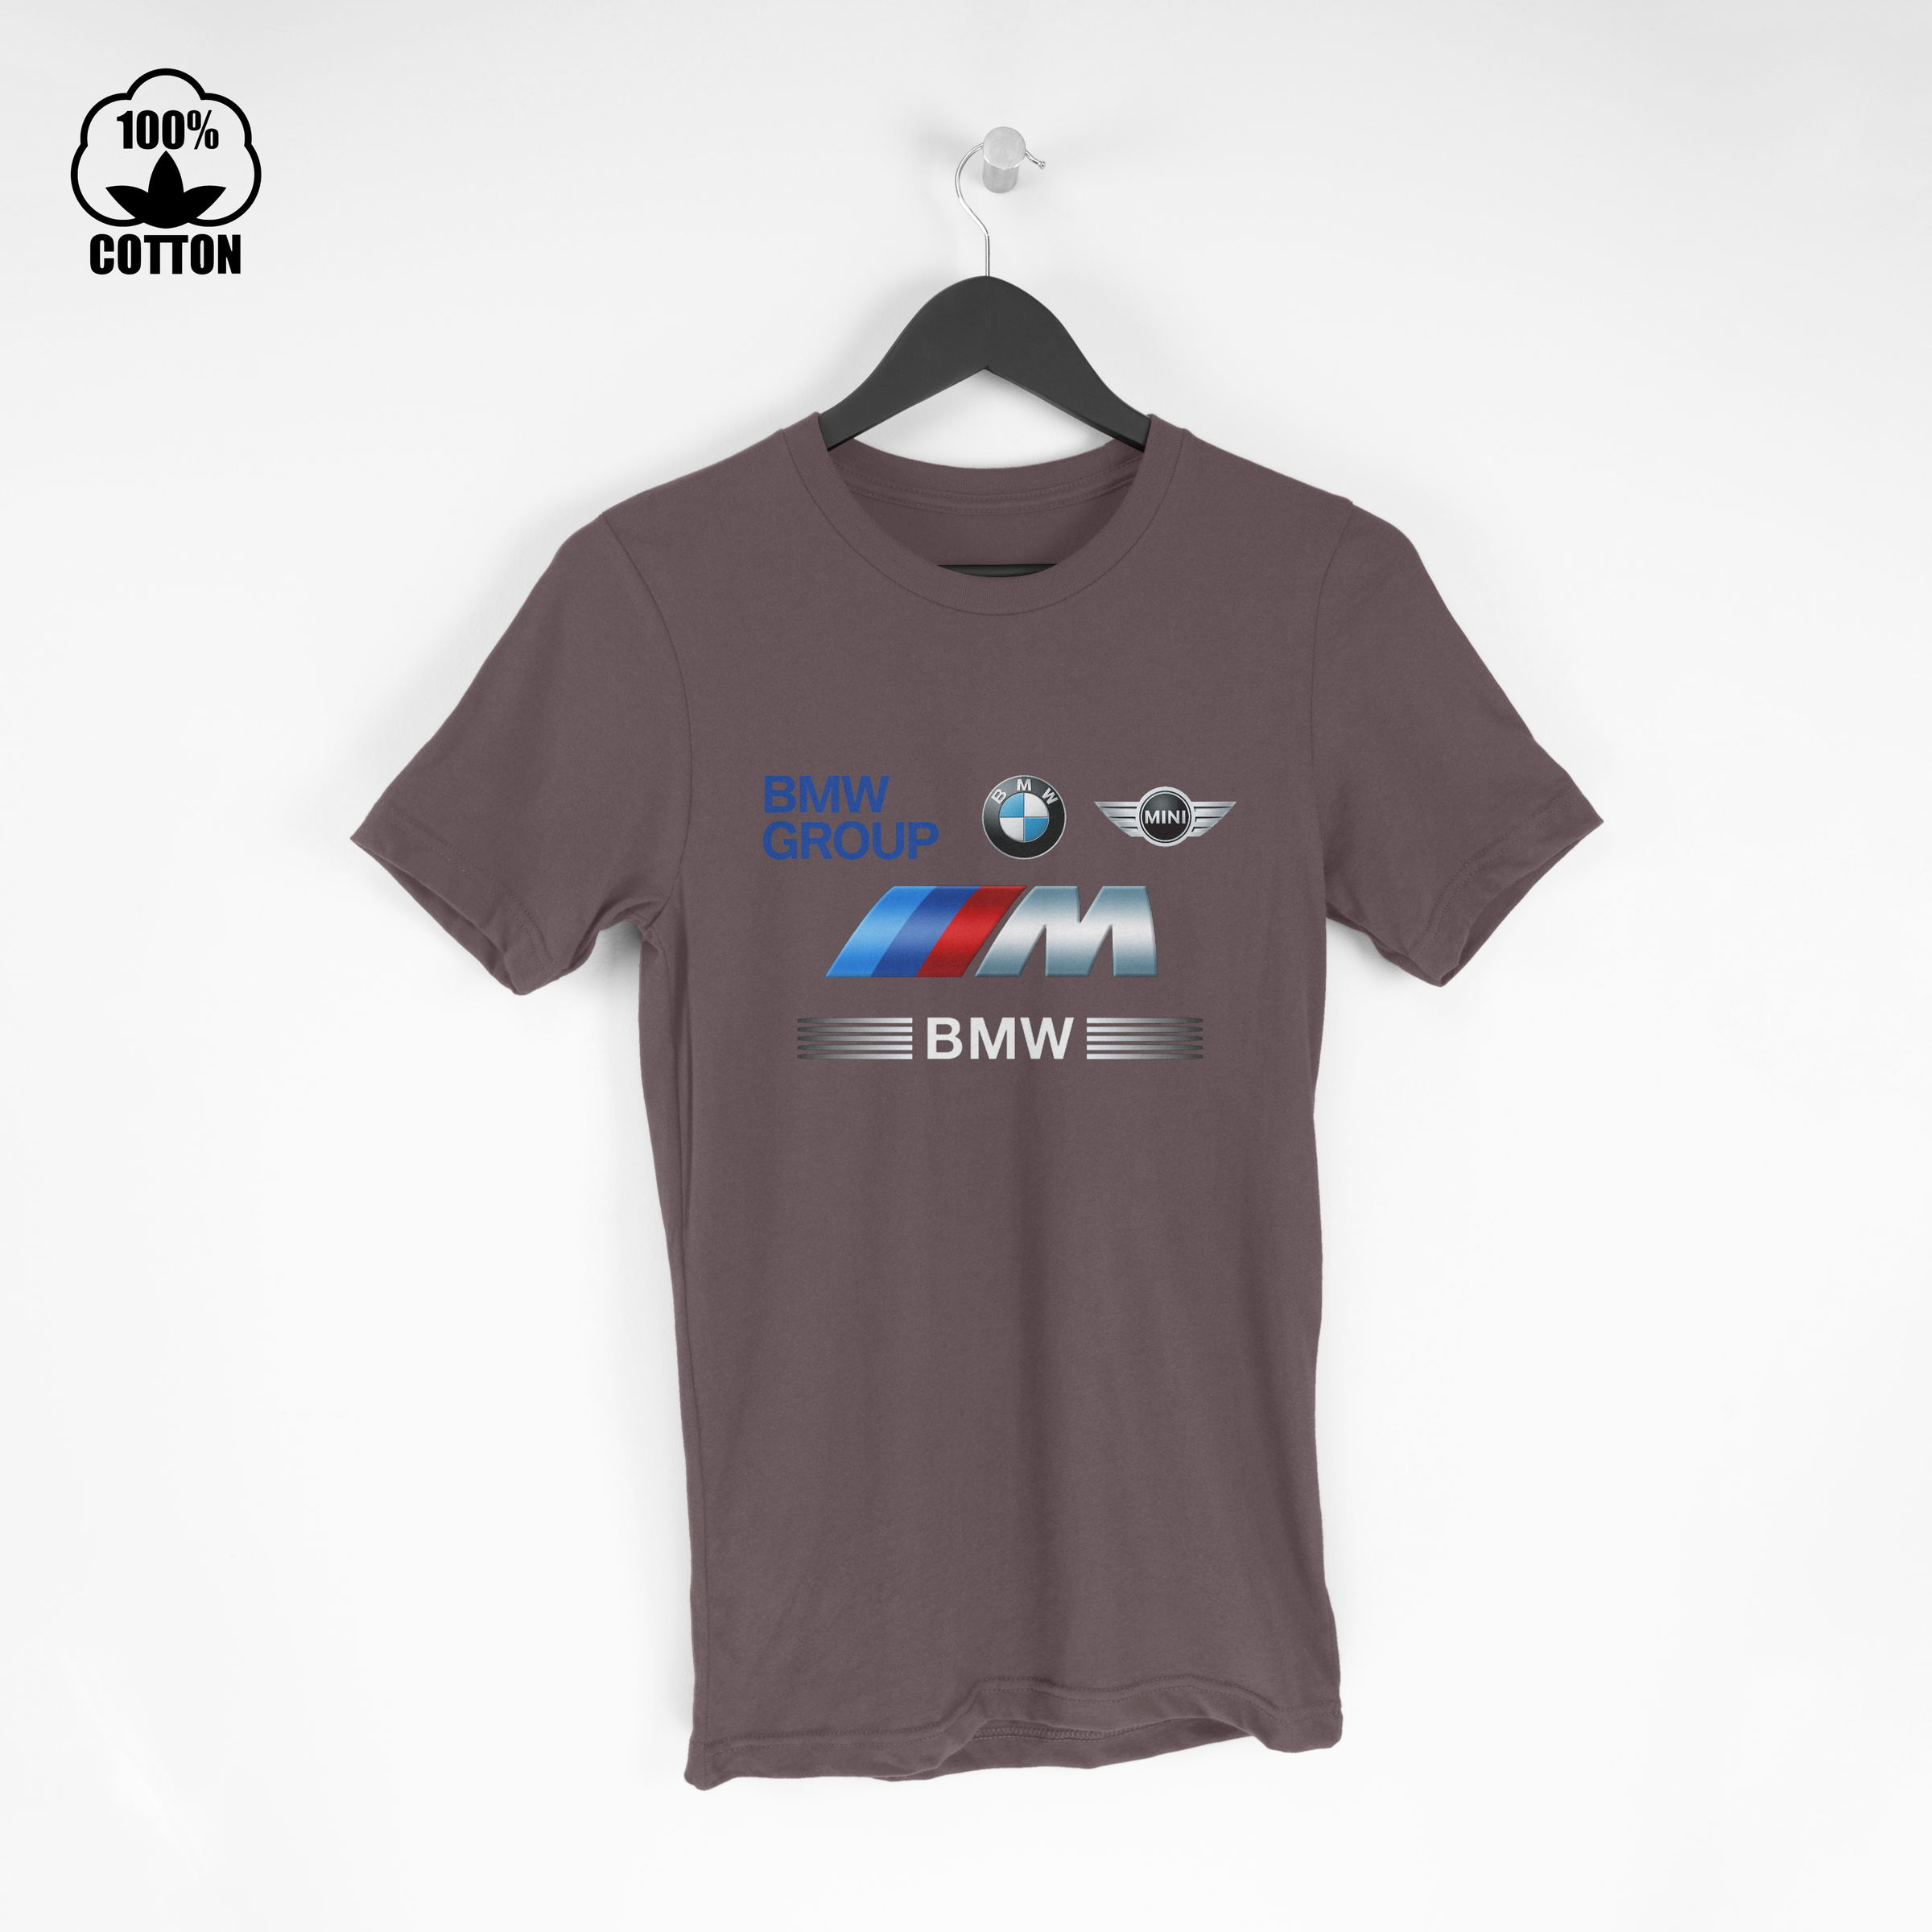 Bmw Grup, Bmw Logo, Bmw Mini, Bmw M3 Men's T-Shirt Tee Black Short Sleeve b.jpg